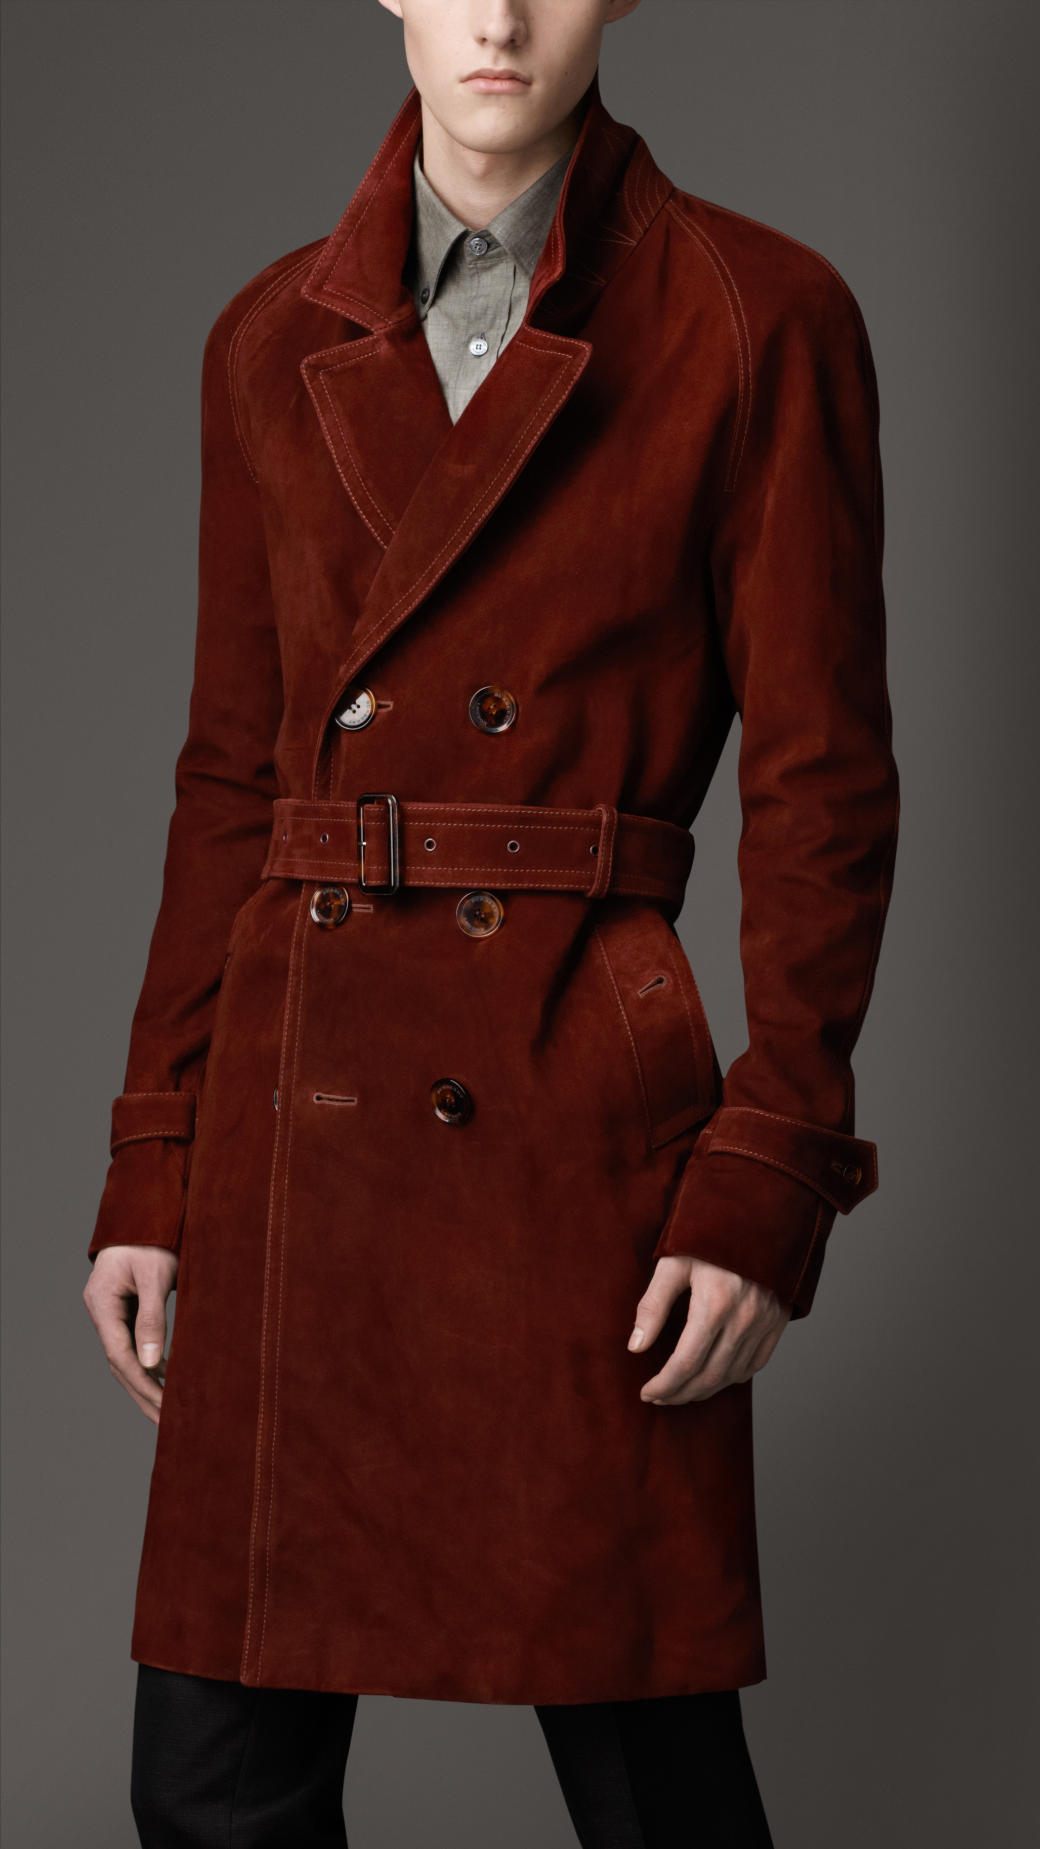 881bcc1d32 Burberry Mid-Length Waxed Suede Trench Coat in Brown for Men - Lyst